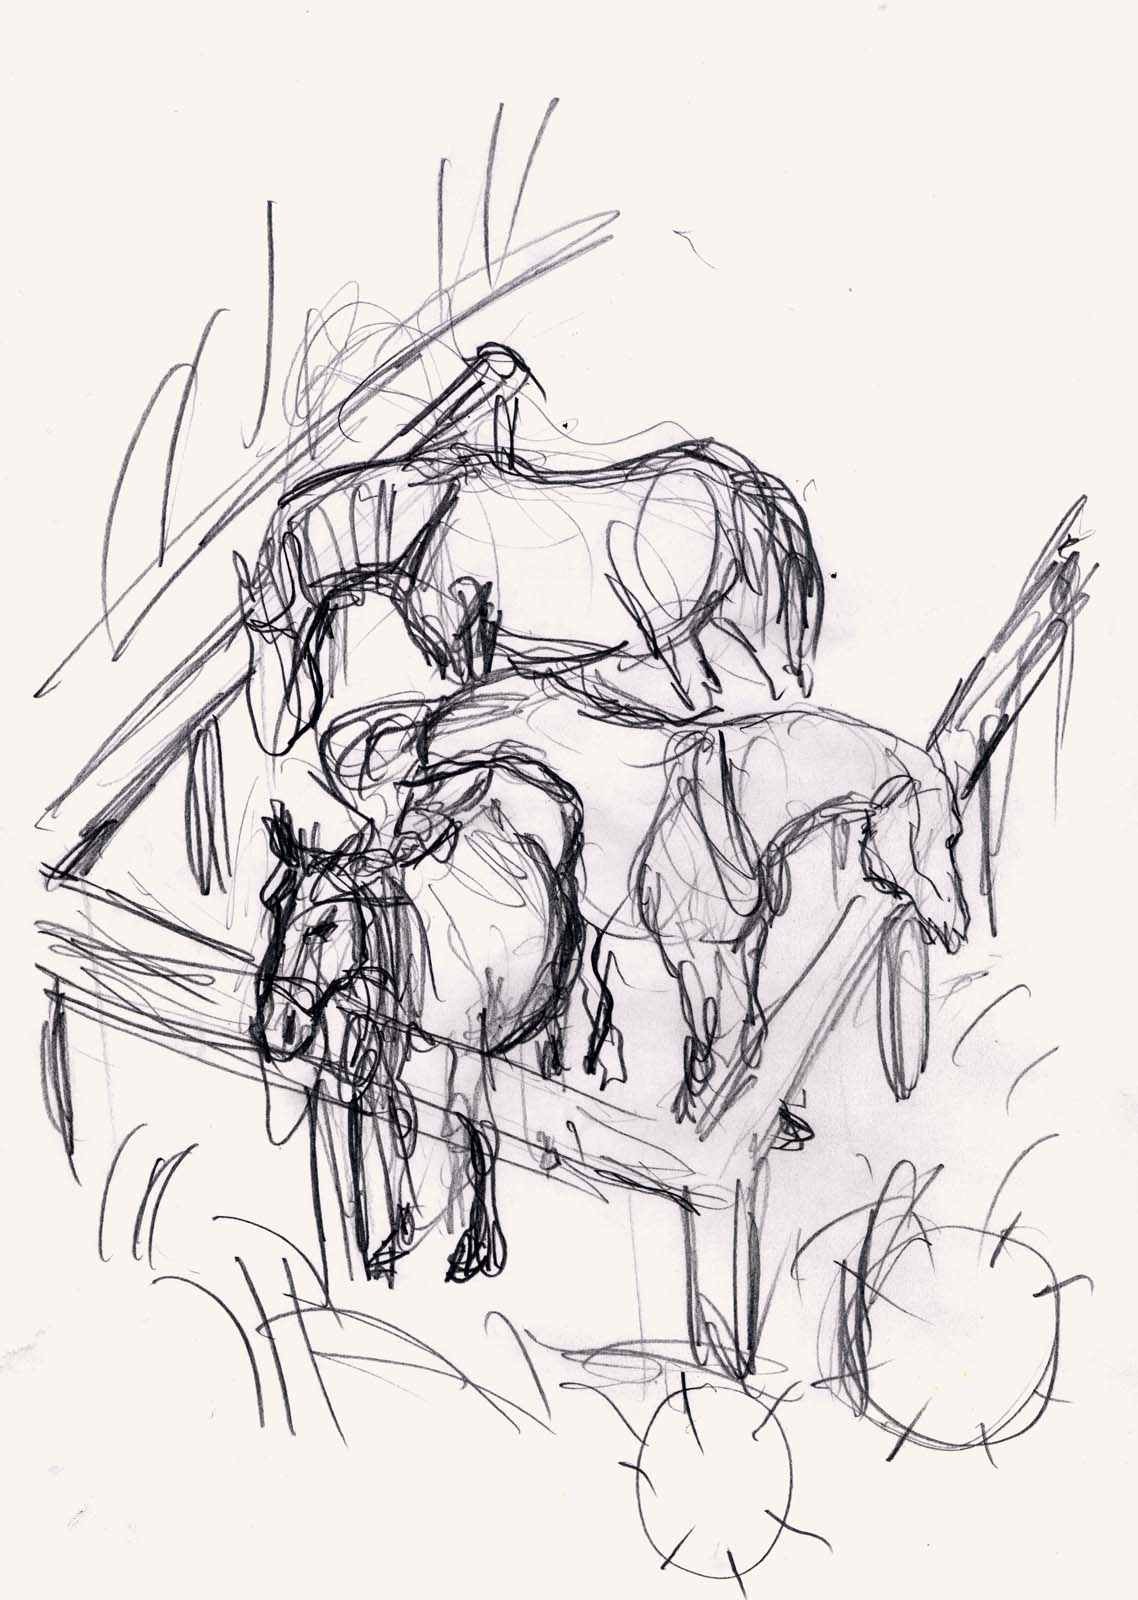 Preparatory-sketch-for-the-concept-drawing-not-dated-1.jpg